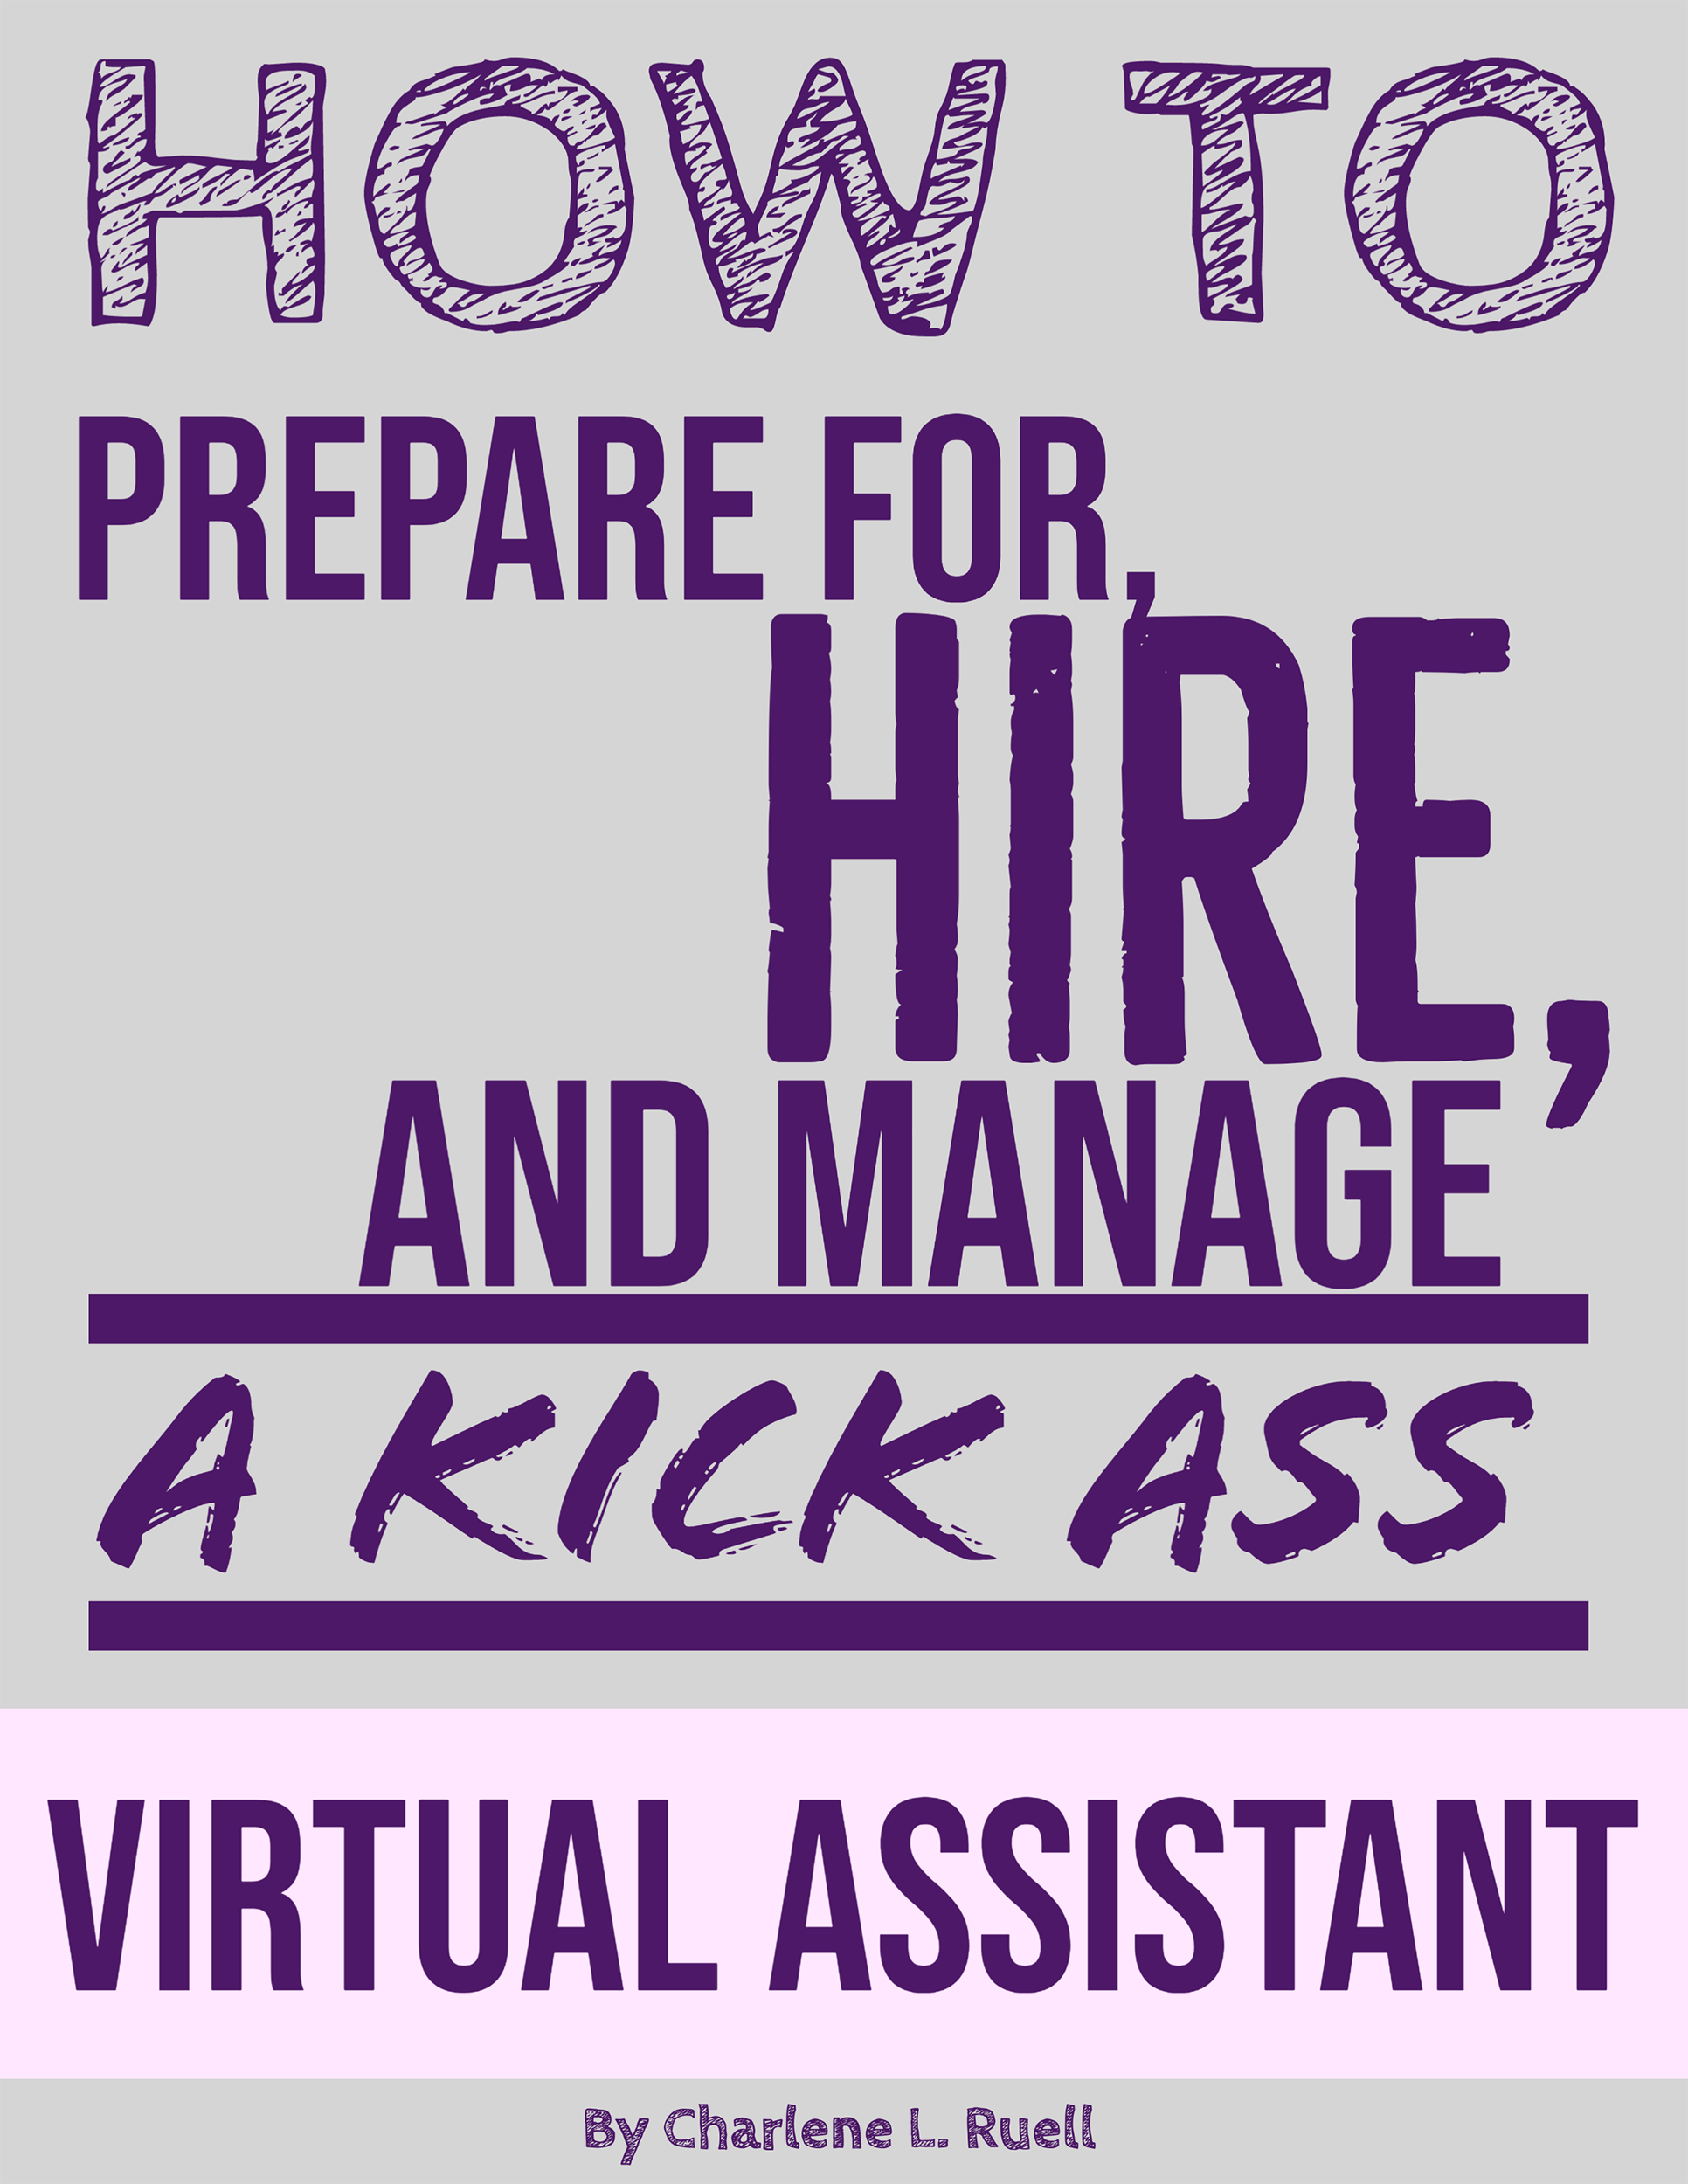 How to Prepare for, Hire, and Manage a Kick Ass Virtual Assistant